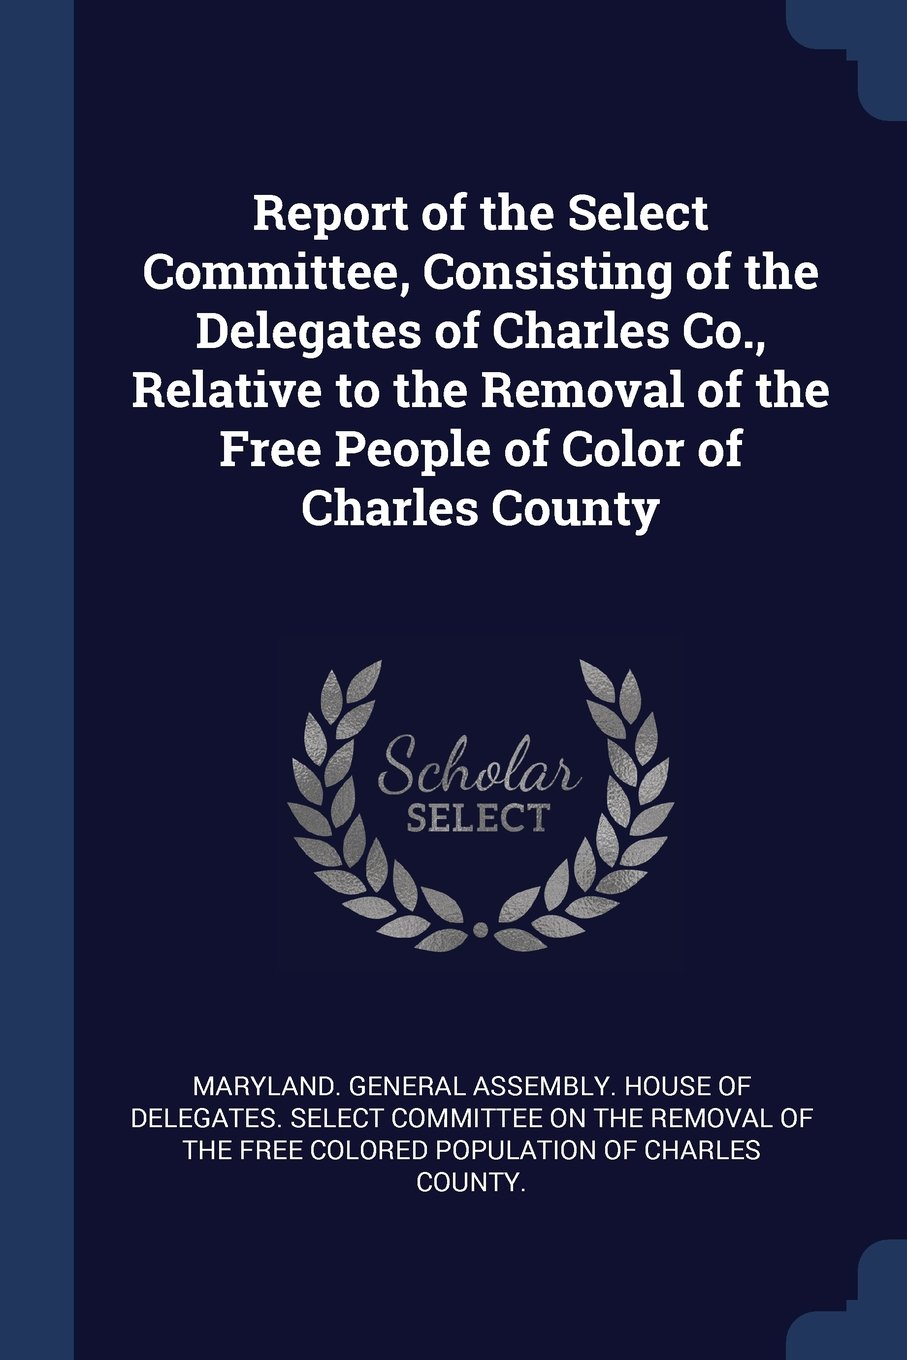 Report of the Select Committee, Consisting of the Delegates of Charles Co., Relative to the Removal of the Free People of Color of Charles County pdf